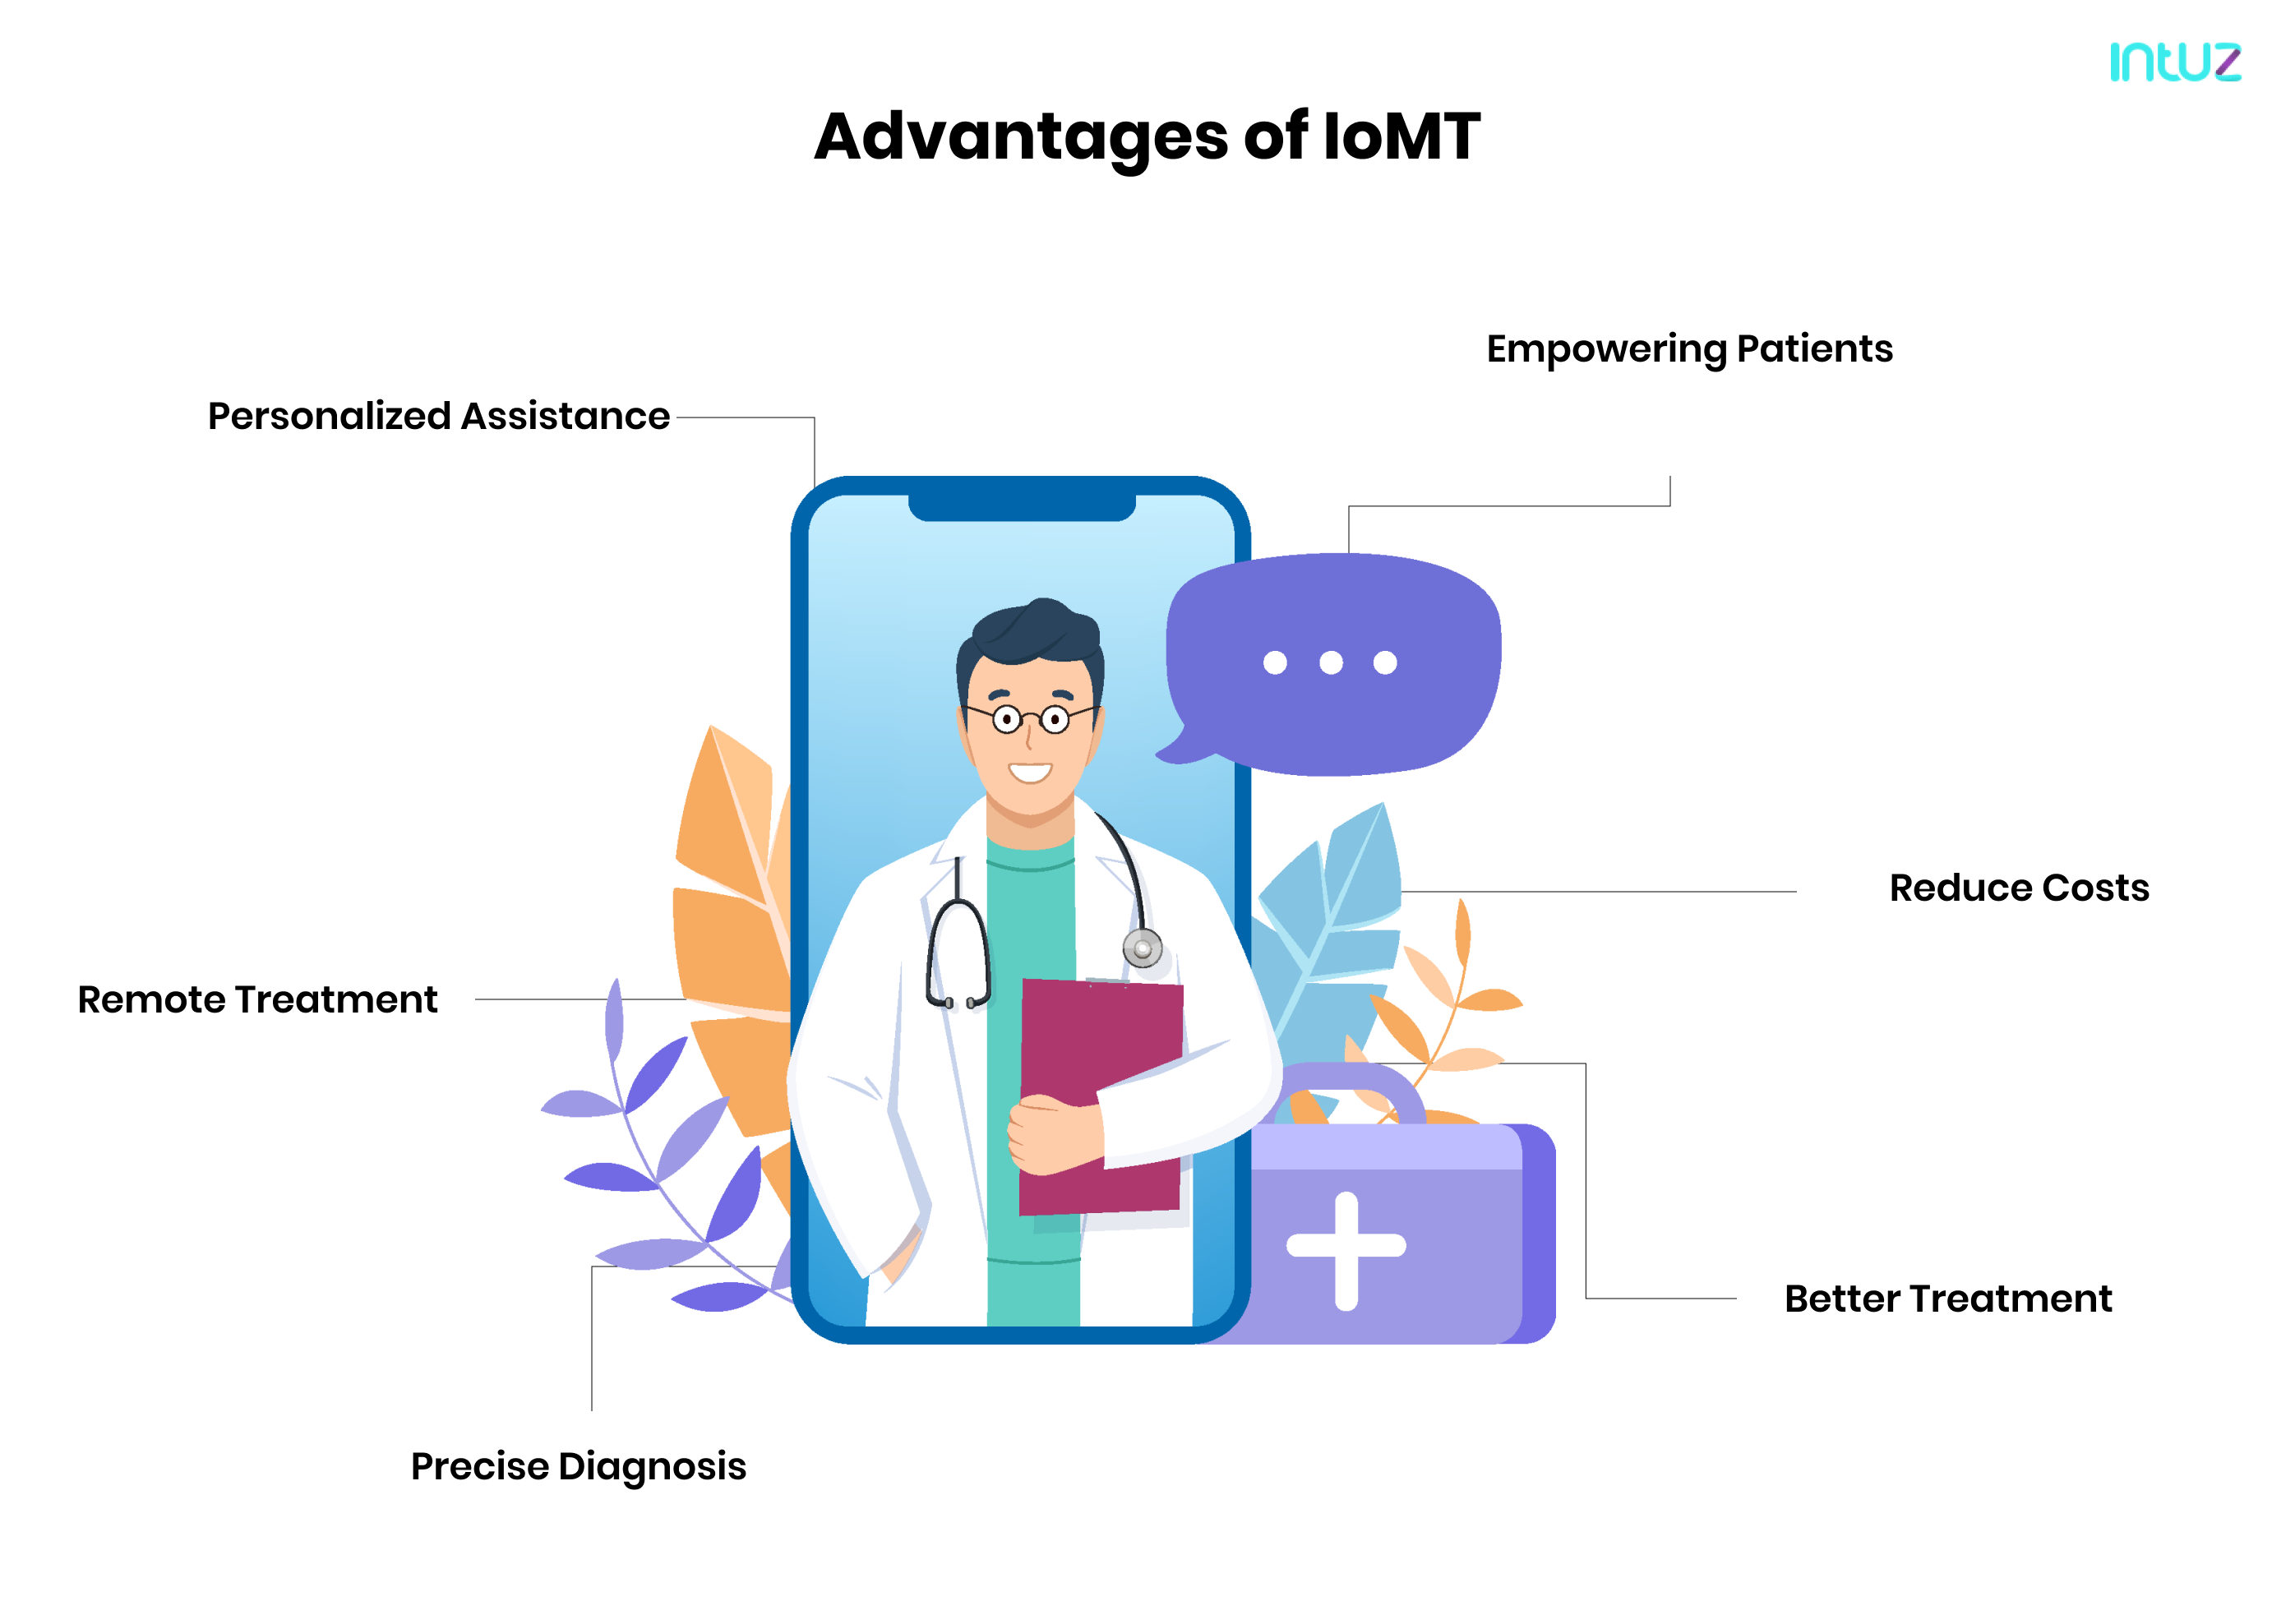 Advantages of IoMT